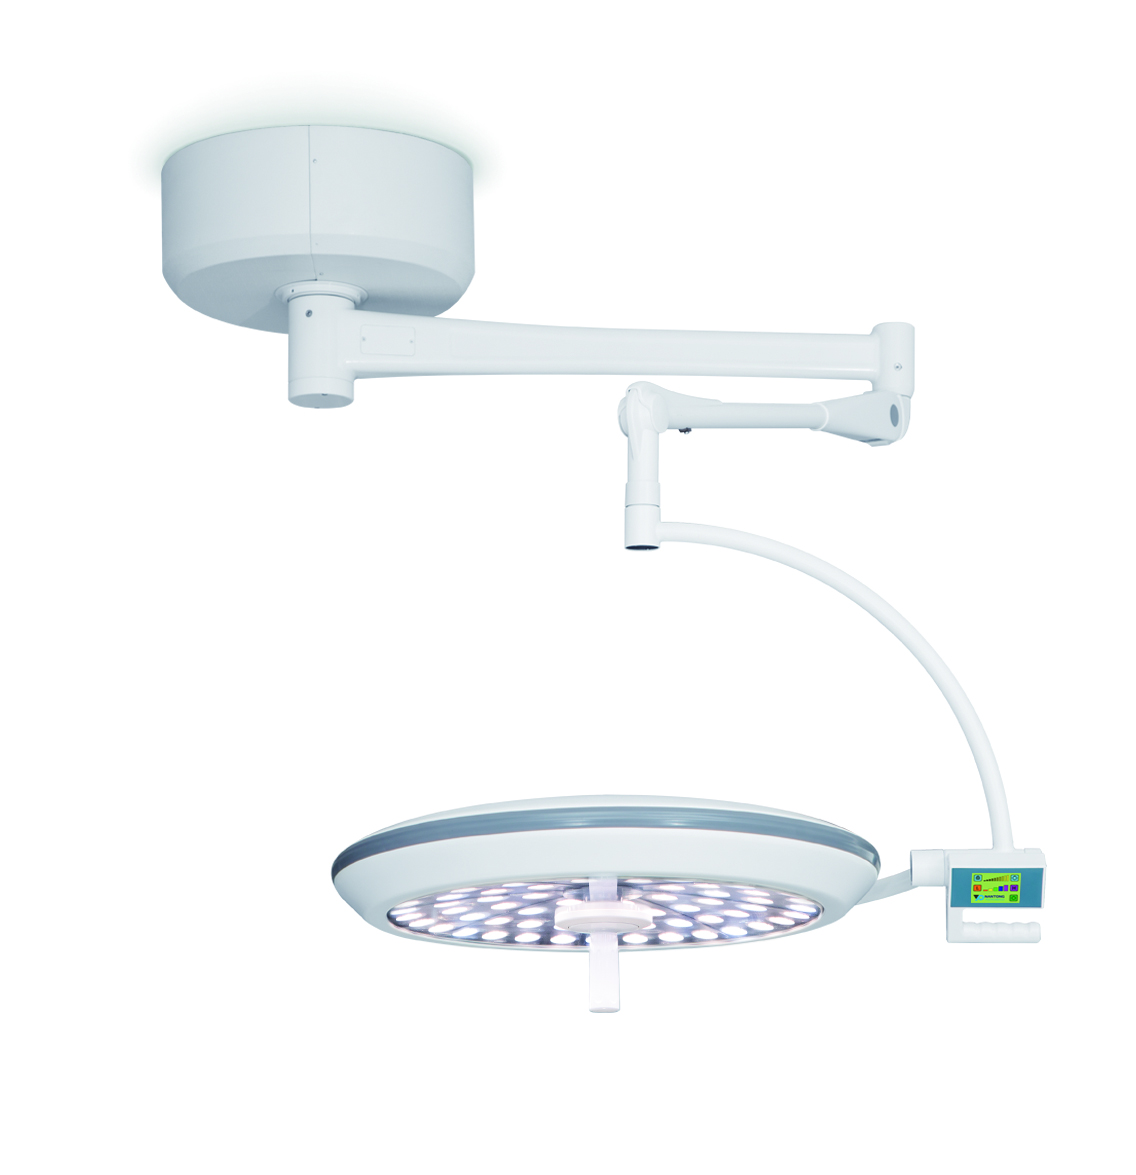 OTL-700 Medical ceiling surgical light operating lamp